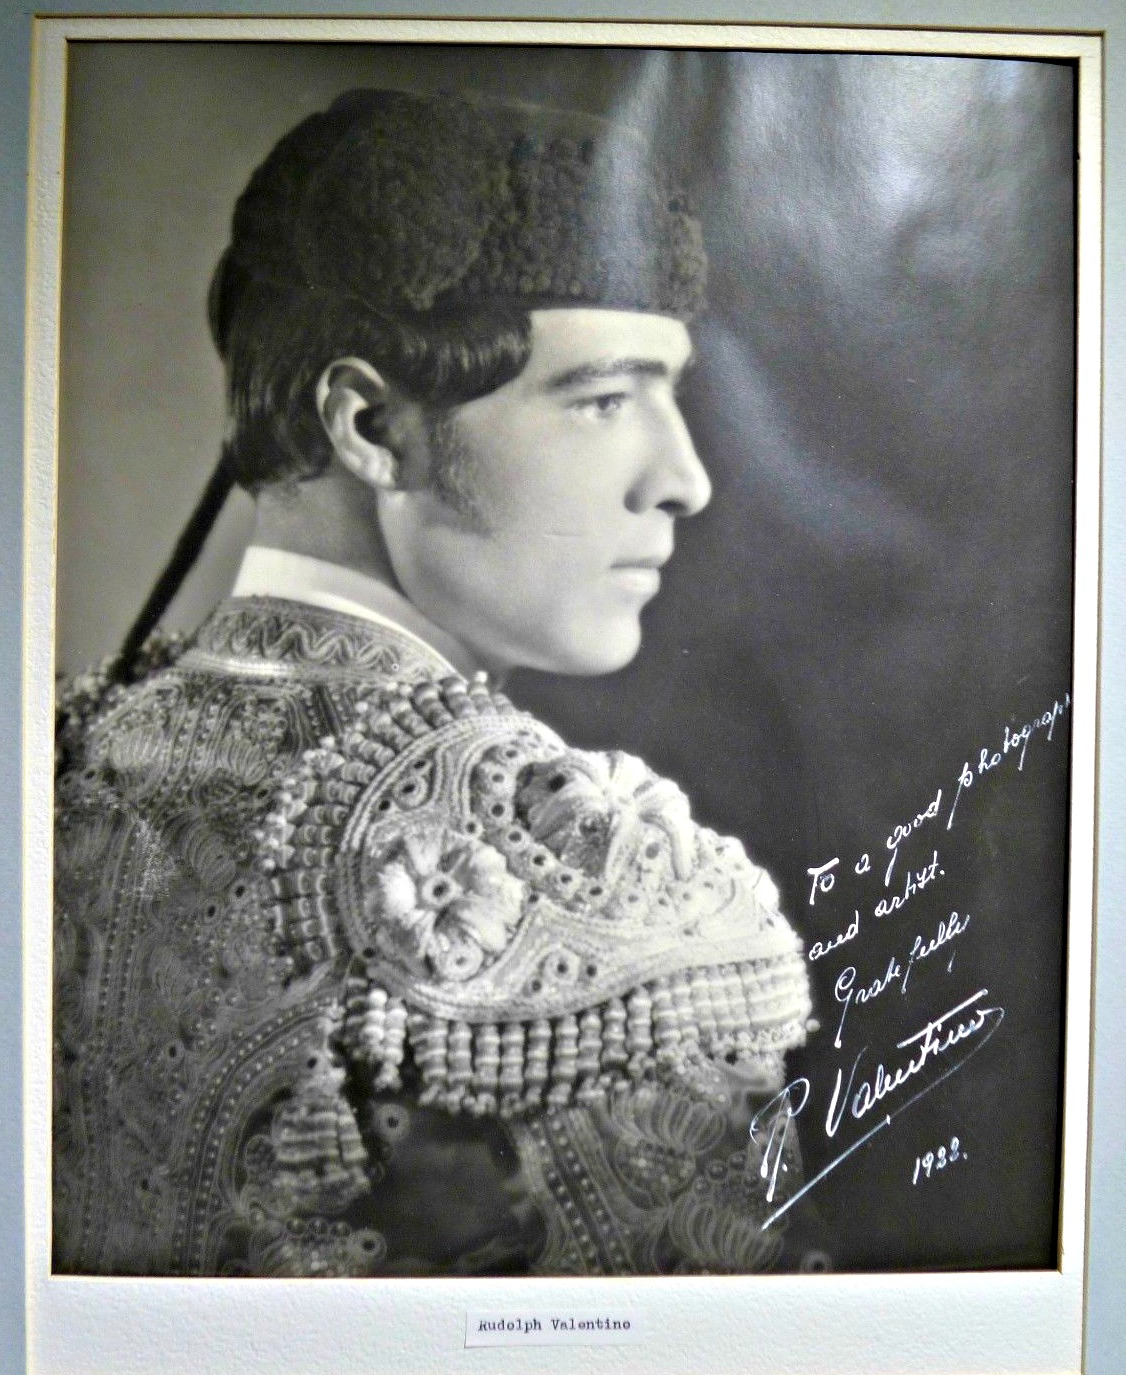 Rudolph Valentino Autographed Photo